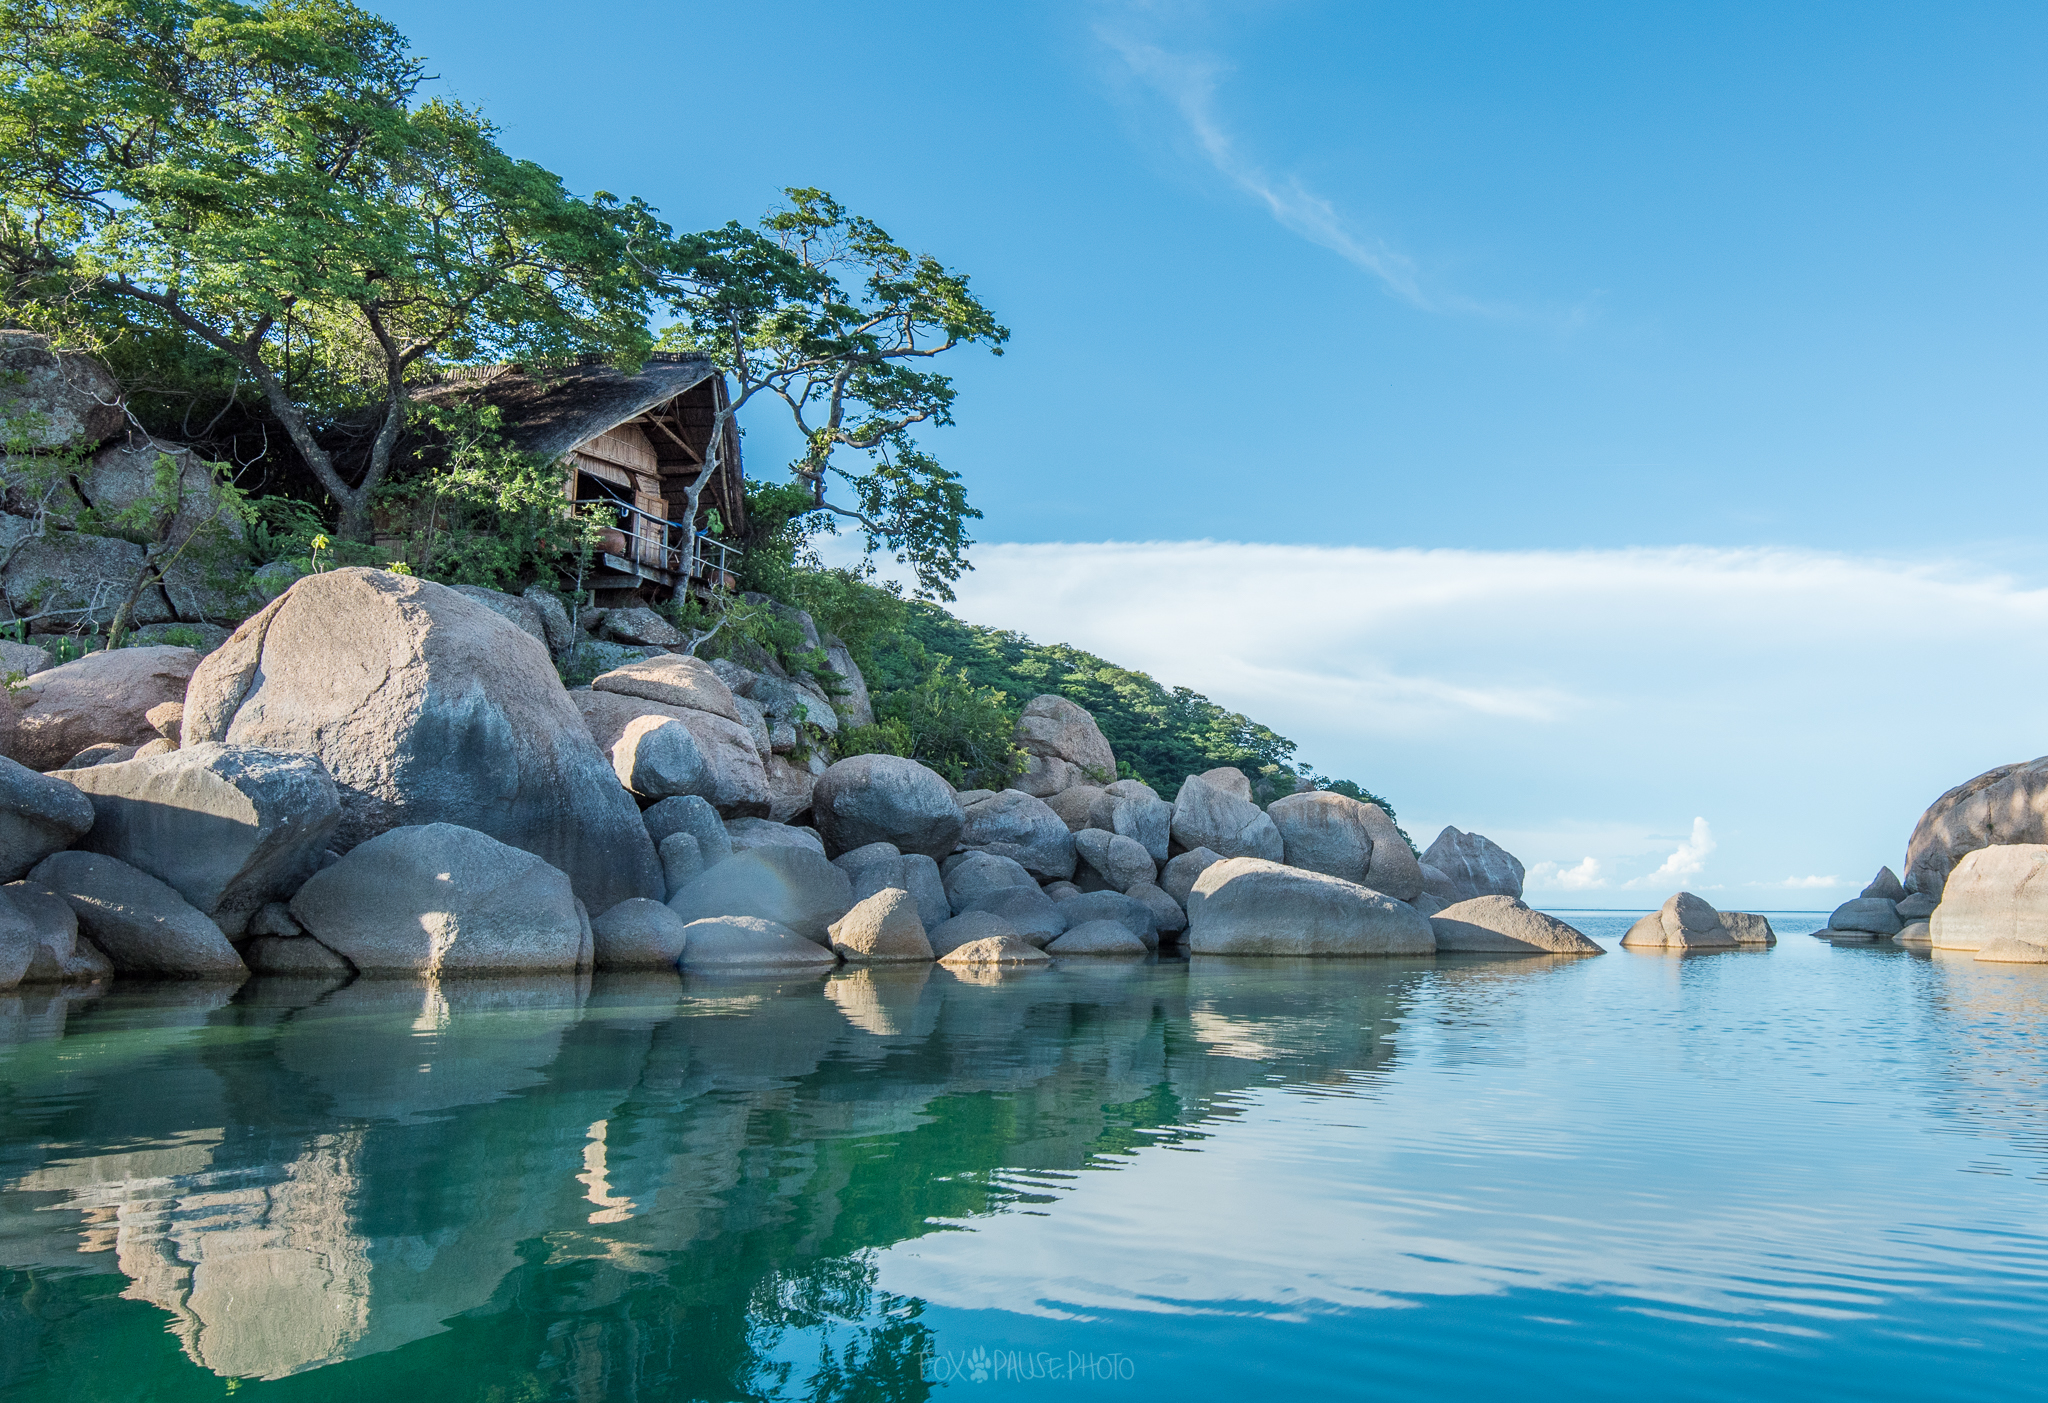 Chalet op Mumbo Islands Lake Malawi